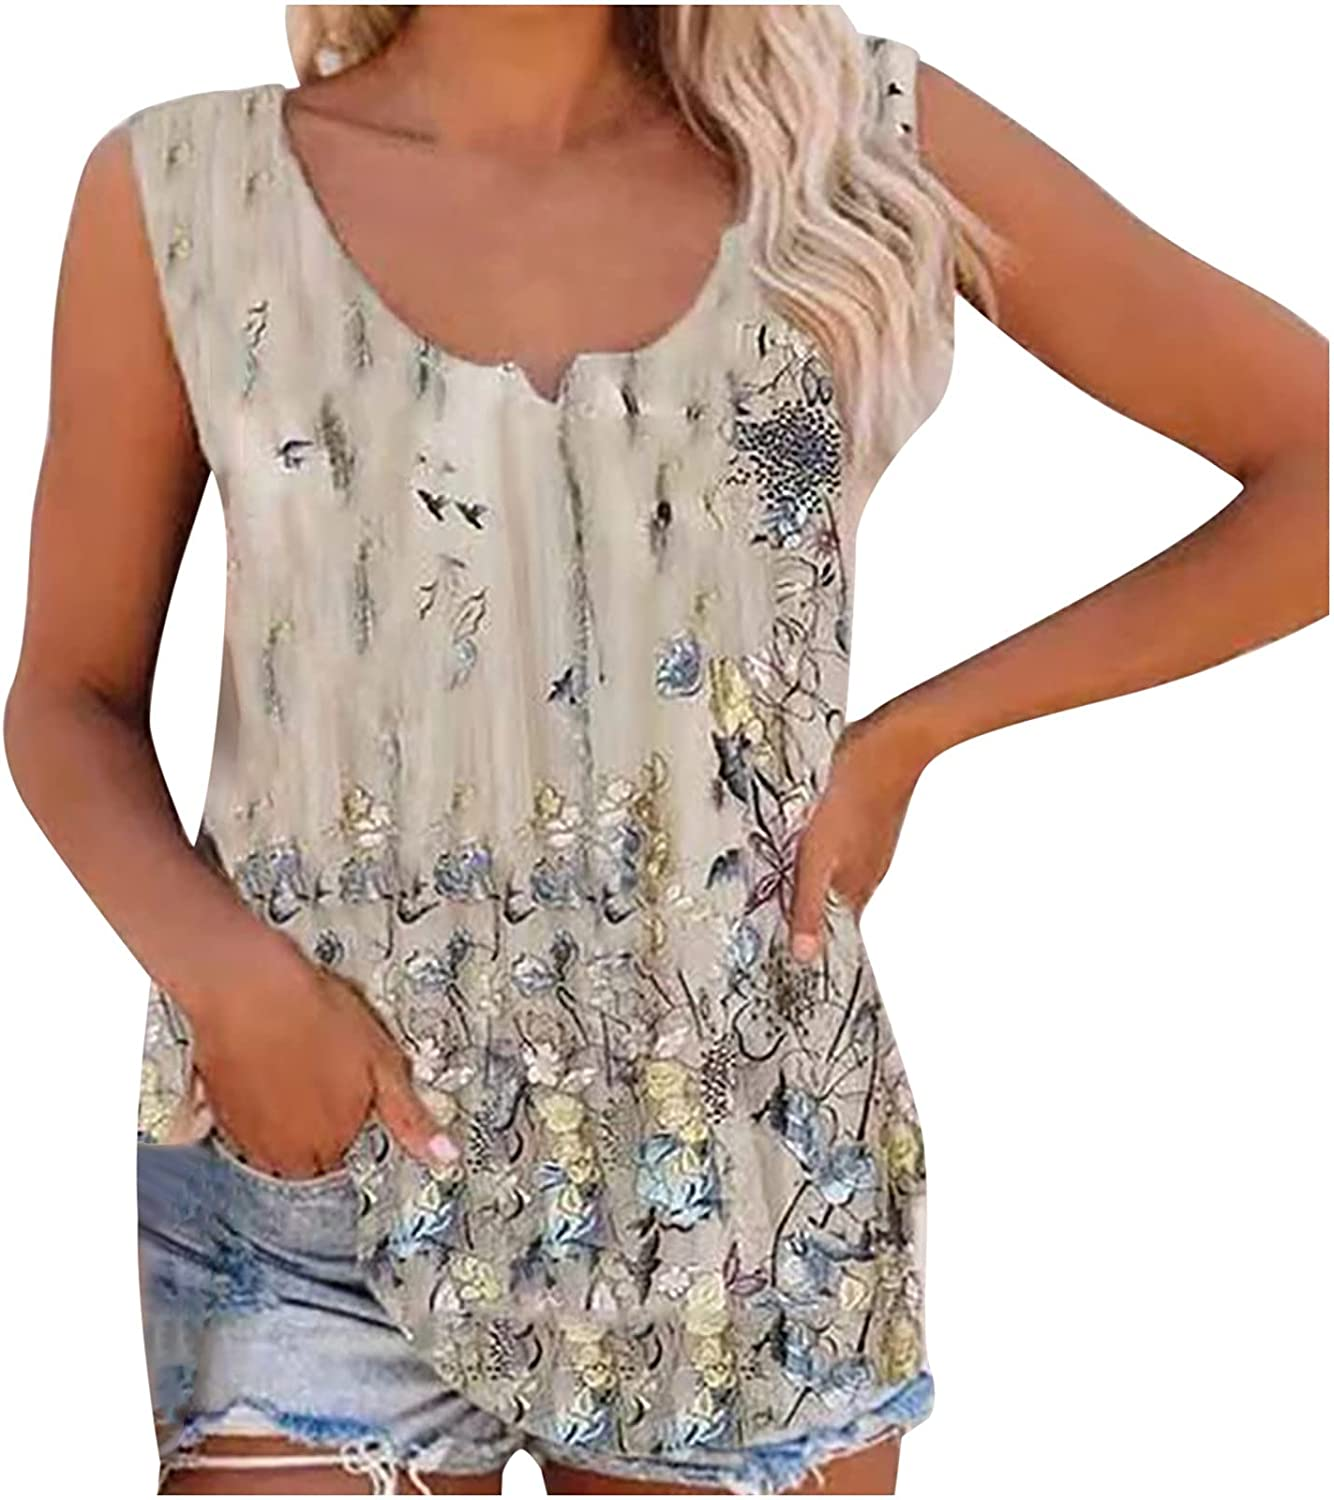 Womens Summer Tops 's Blouse New Flower Print Casual Loose Color Classic Vest Tops